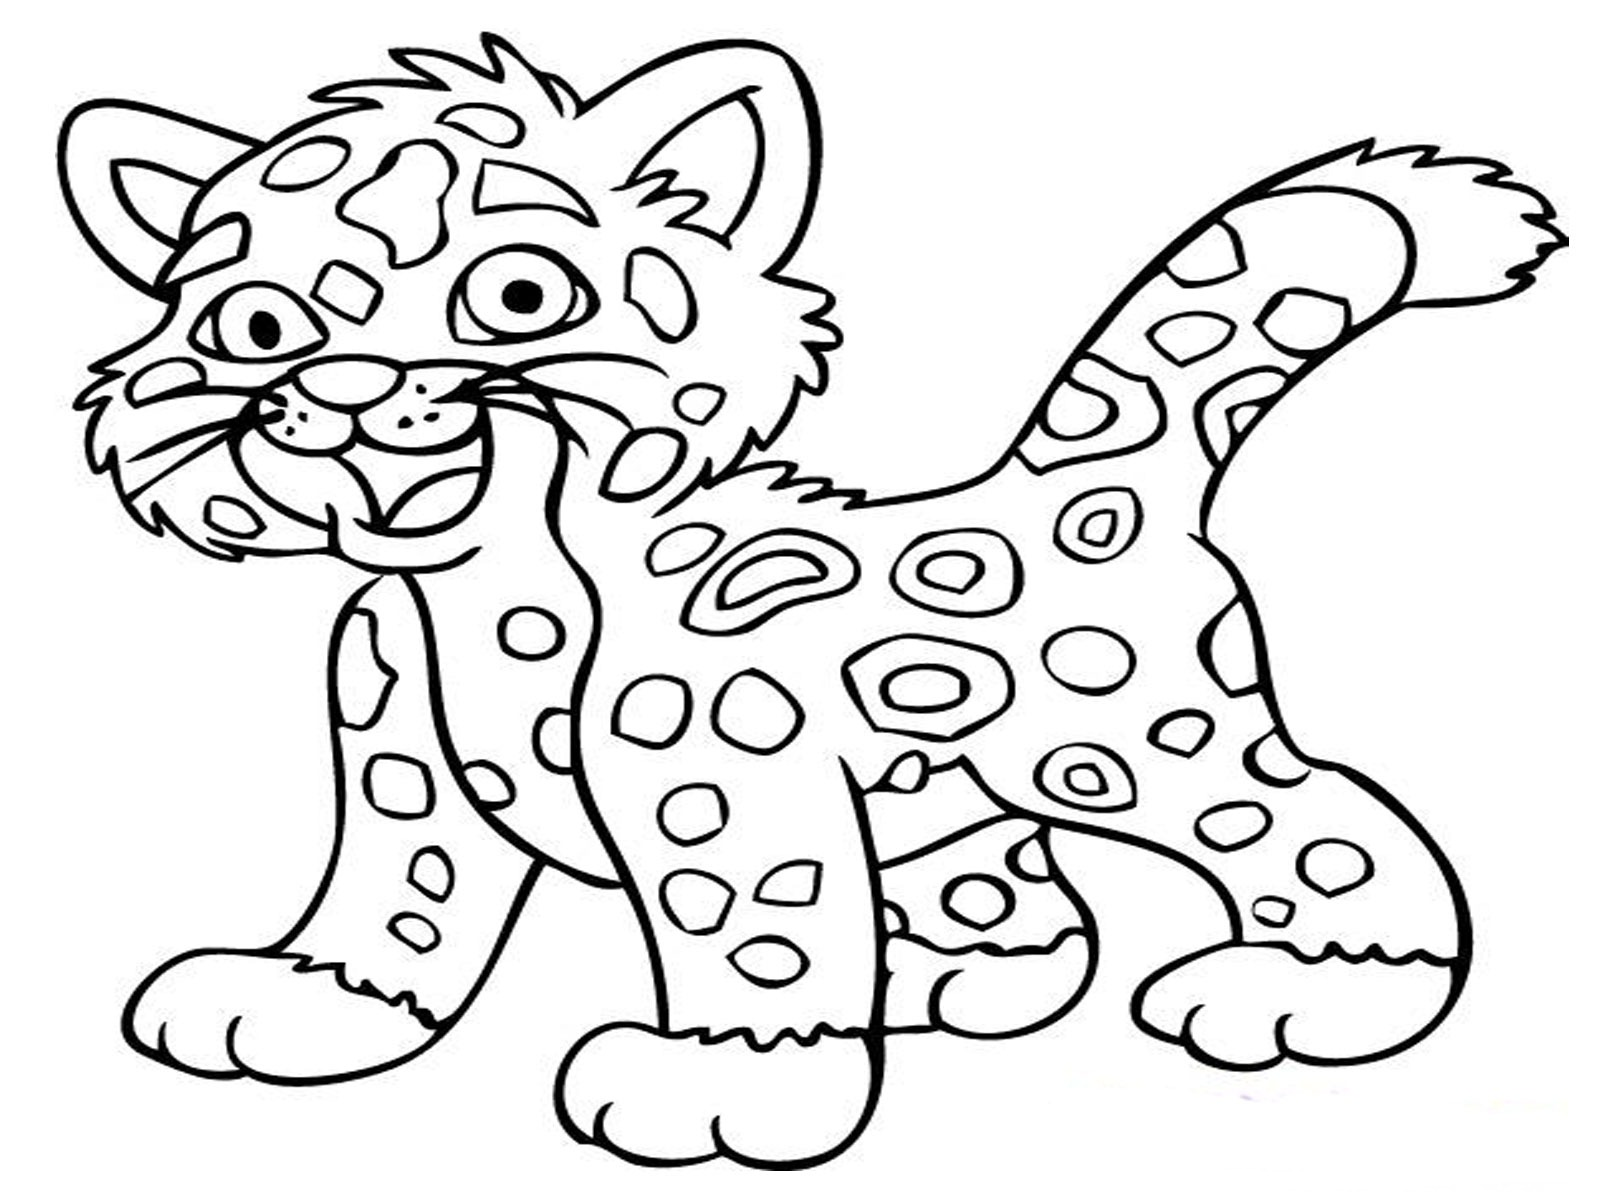 free coloring pages jaguar animal printable : - Coloring Guru